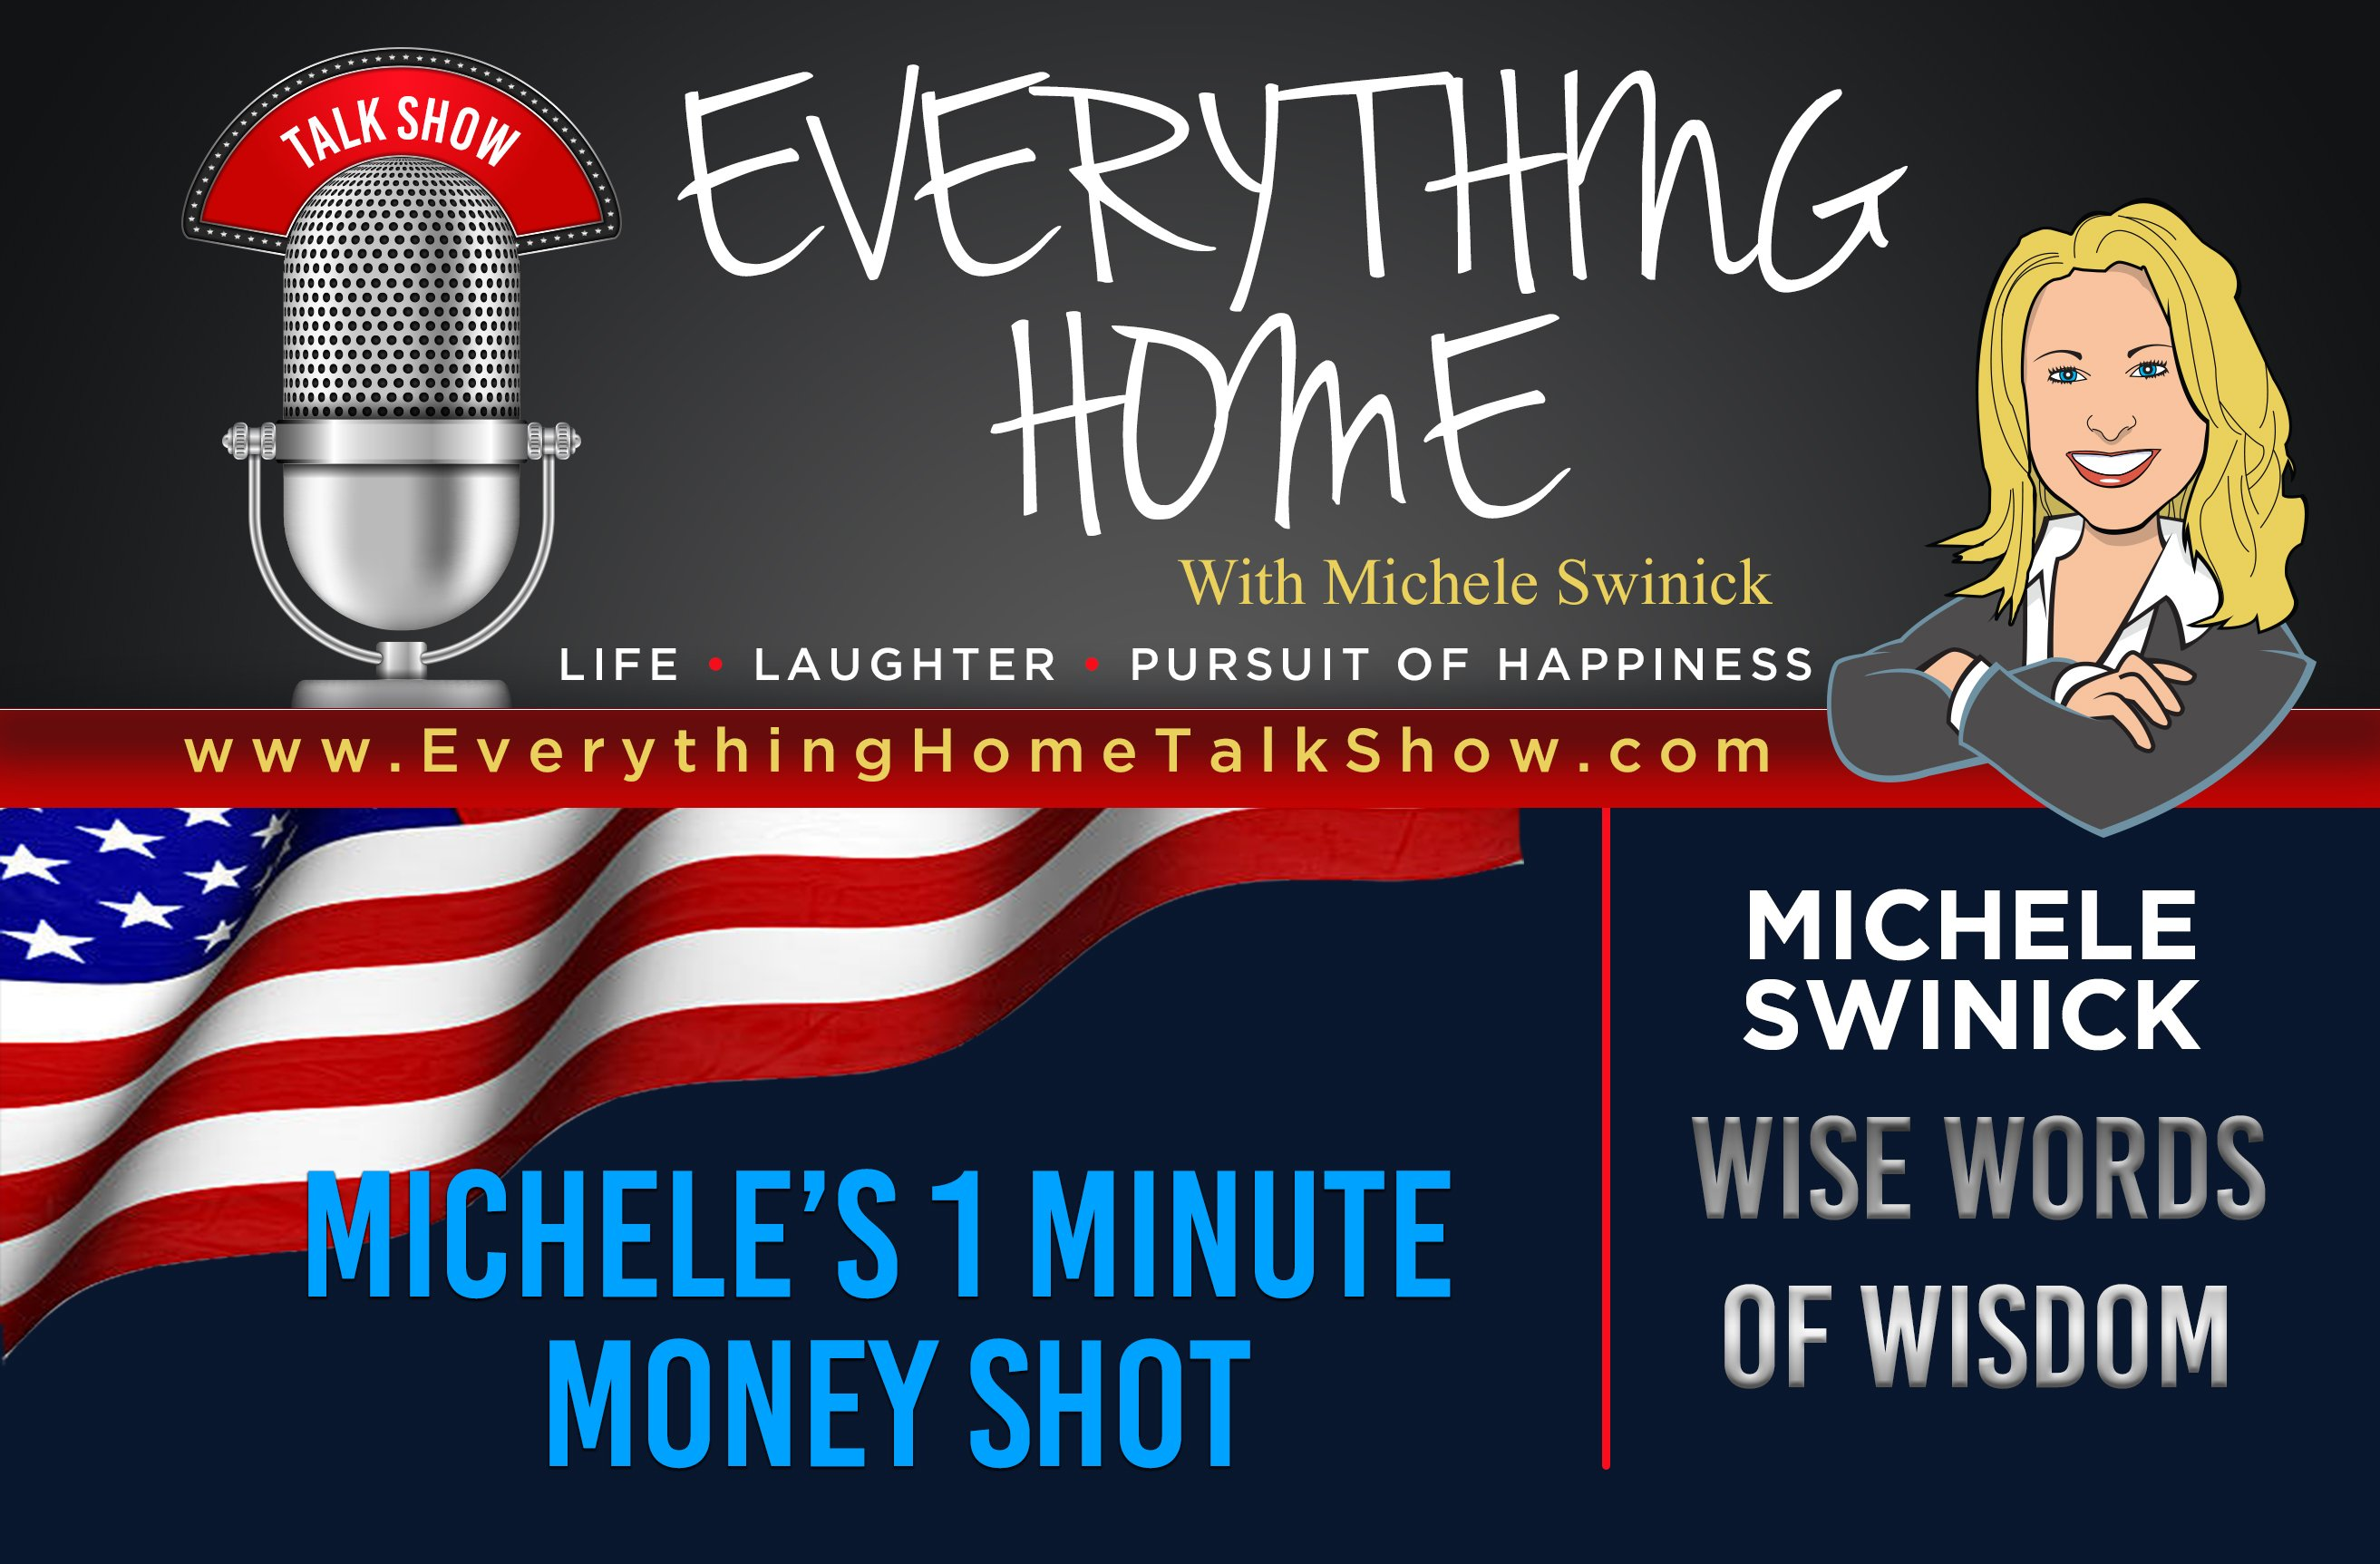 Everything Home Talk Radio Show & Podcast - MICHELE'S 1 MINUTE MONEY SHOT - Wise Words Of Wisdom